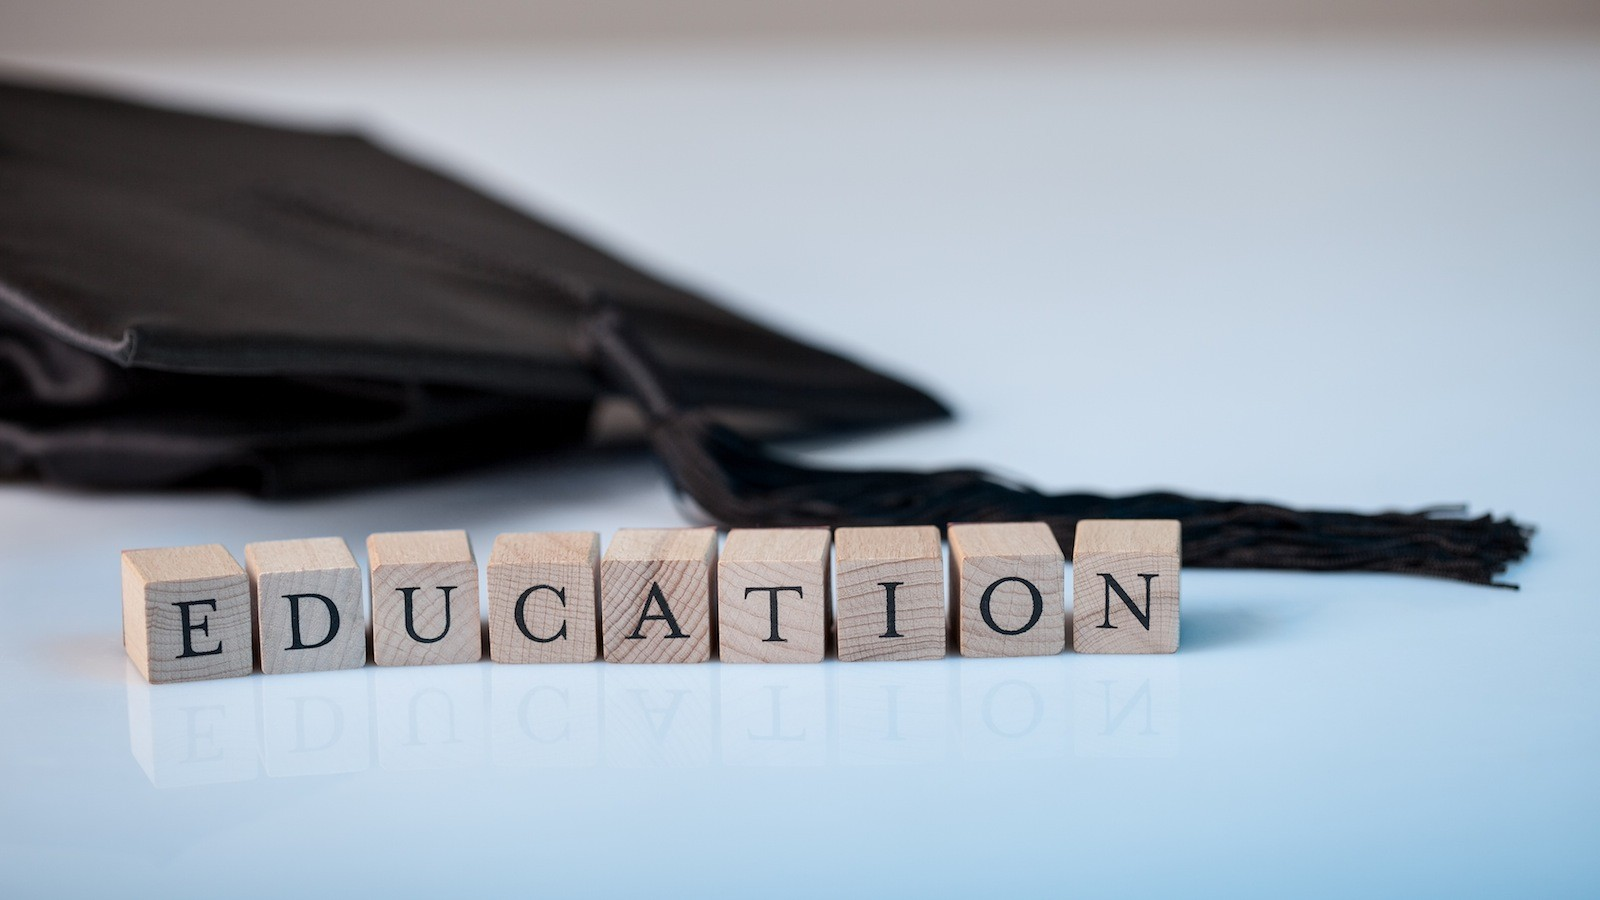 Education concept with the alphabet letters for Education spelt out on wooden blocks beside a graduation cap